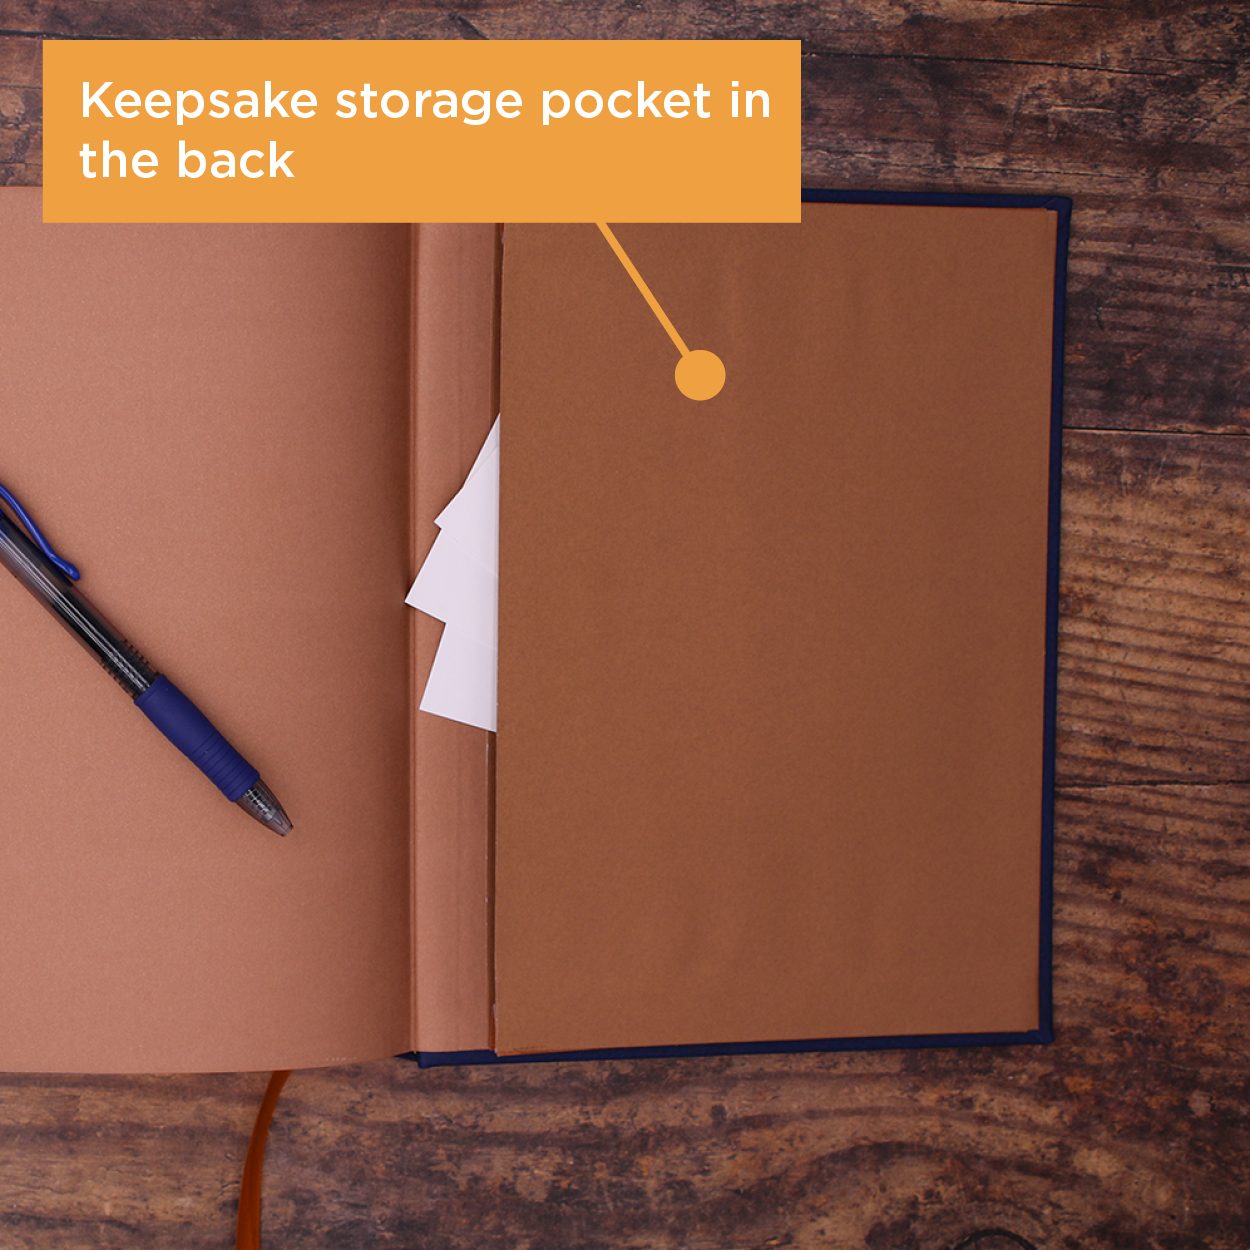 OFS_Features_StoragePocket